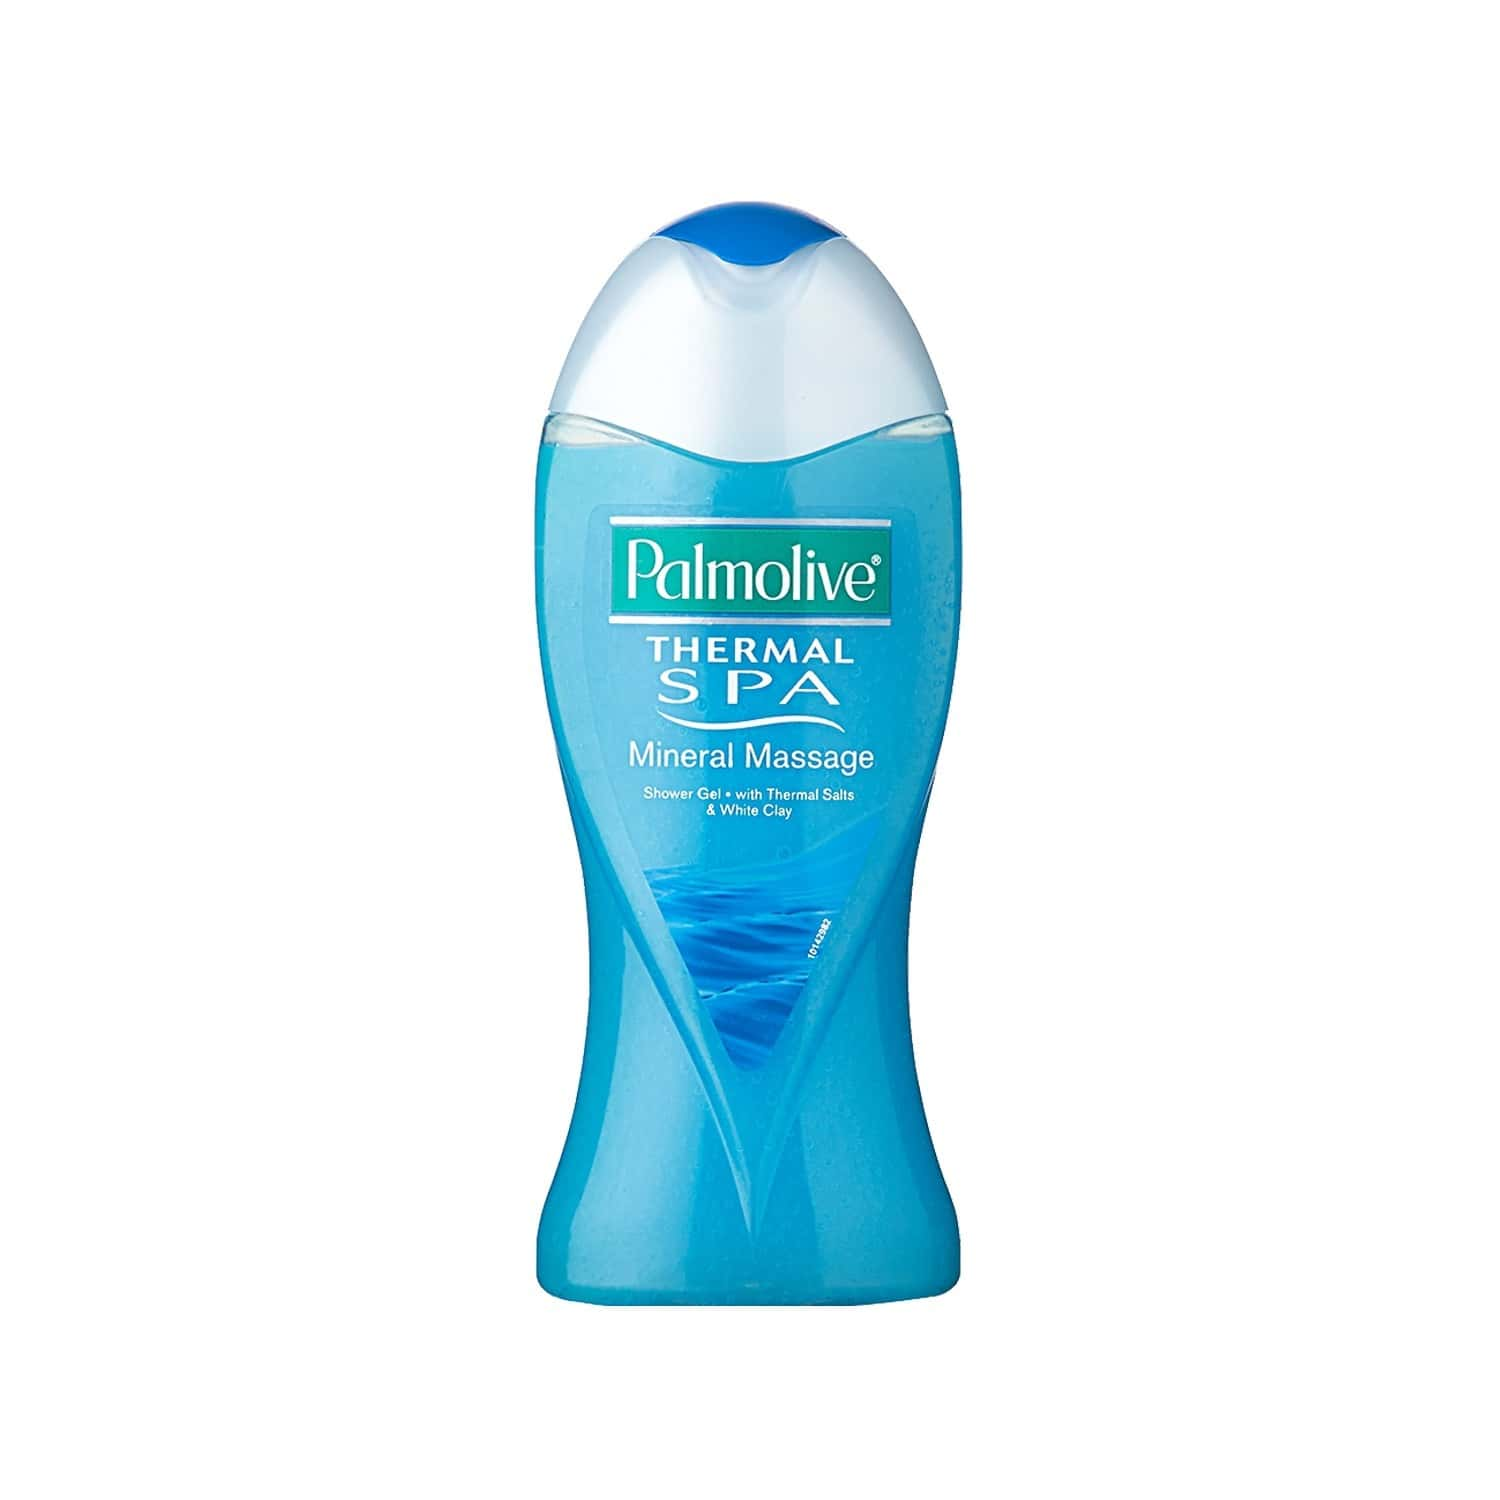 Palmolive Thermal Spa Mineral Massage Body Wash 250ml